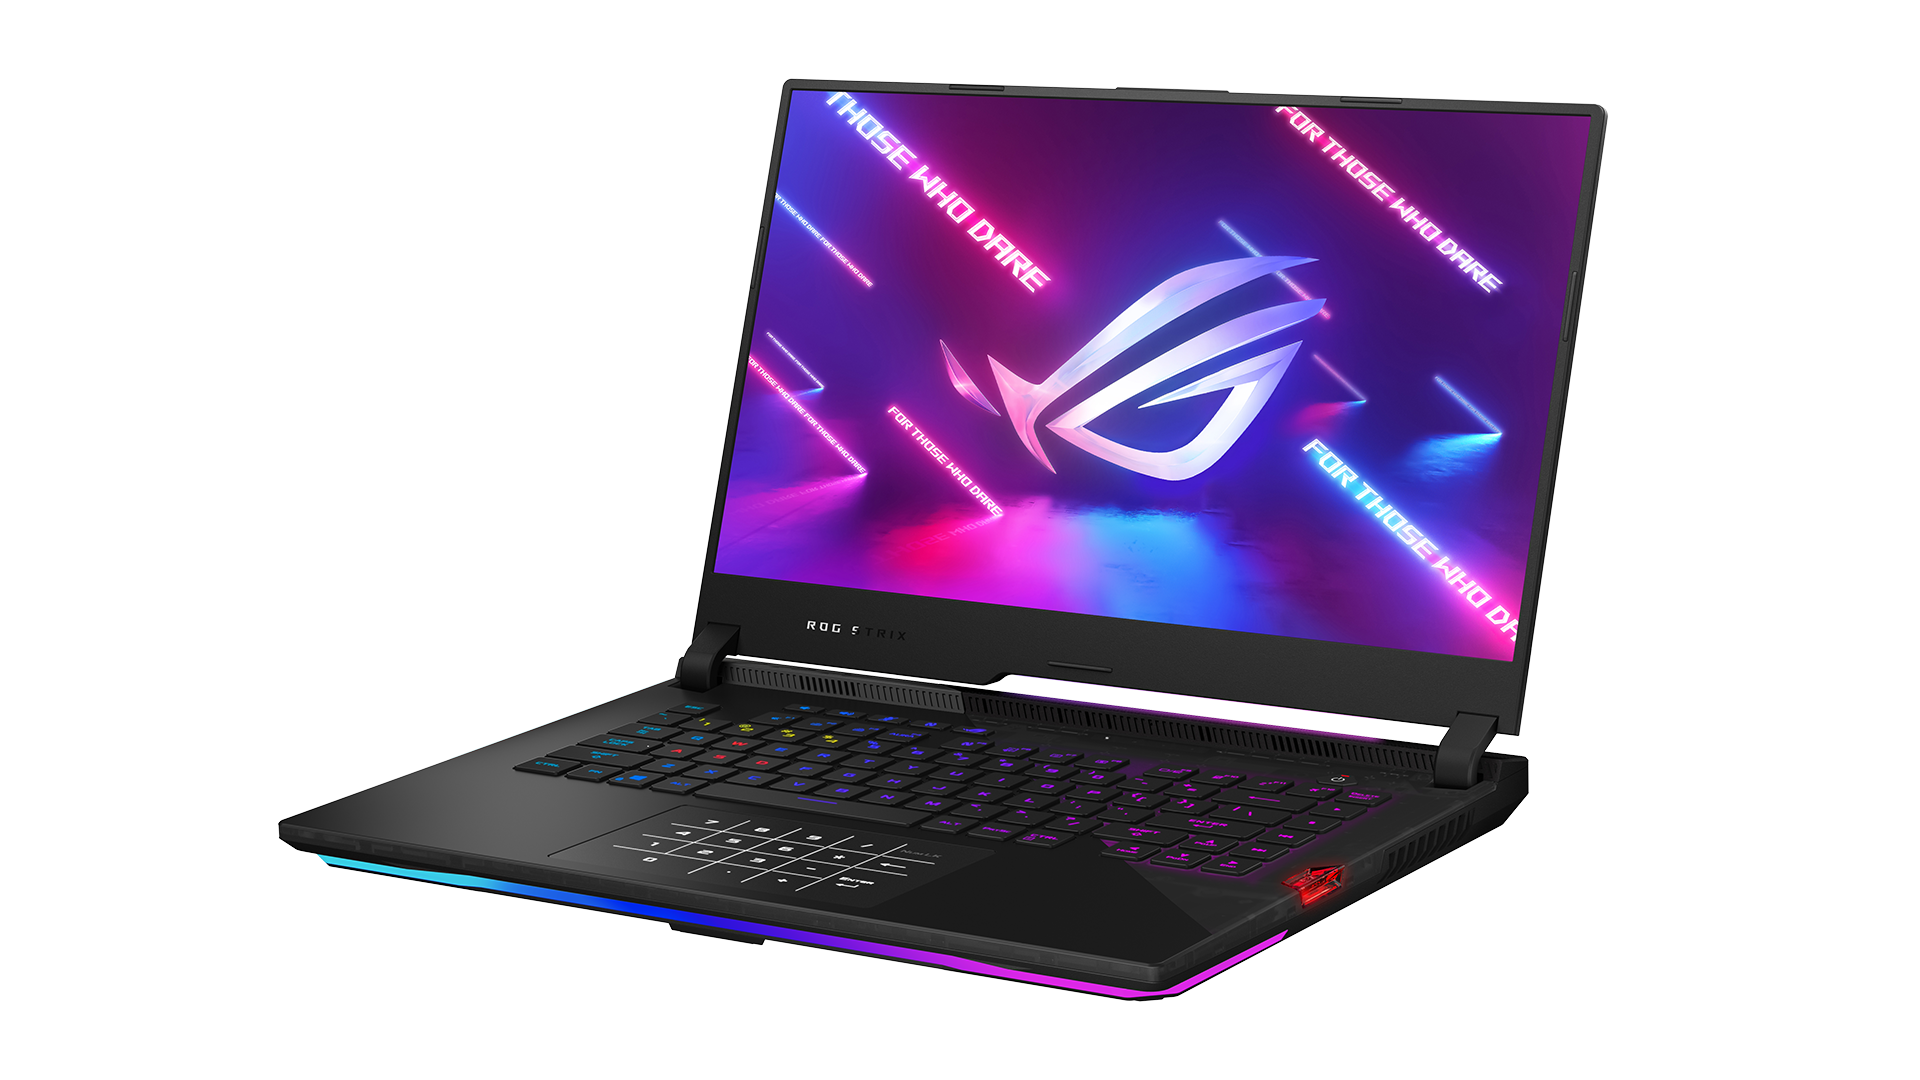 Asus launches ROG Strix series of laptops and desktop